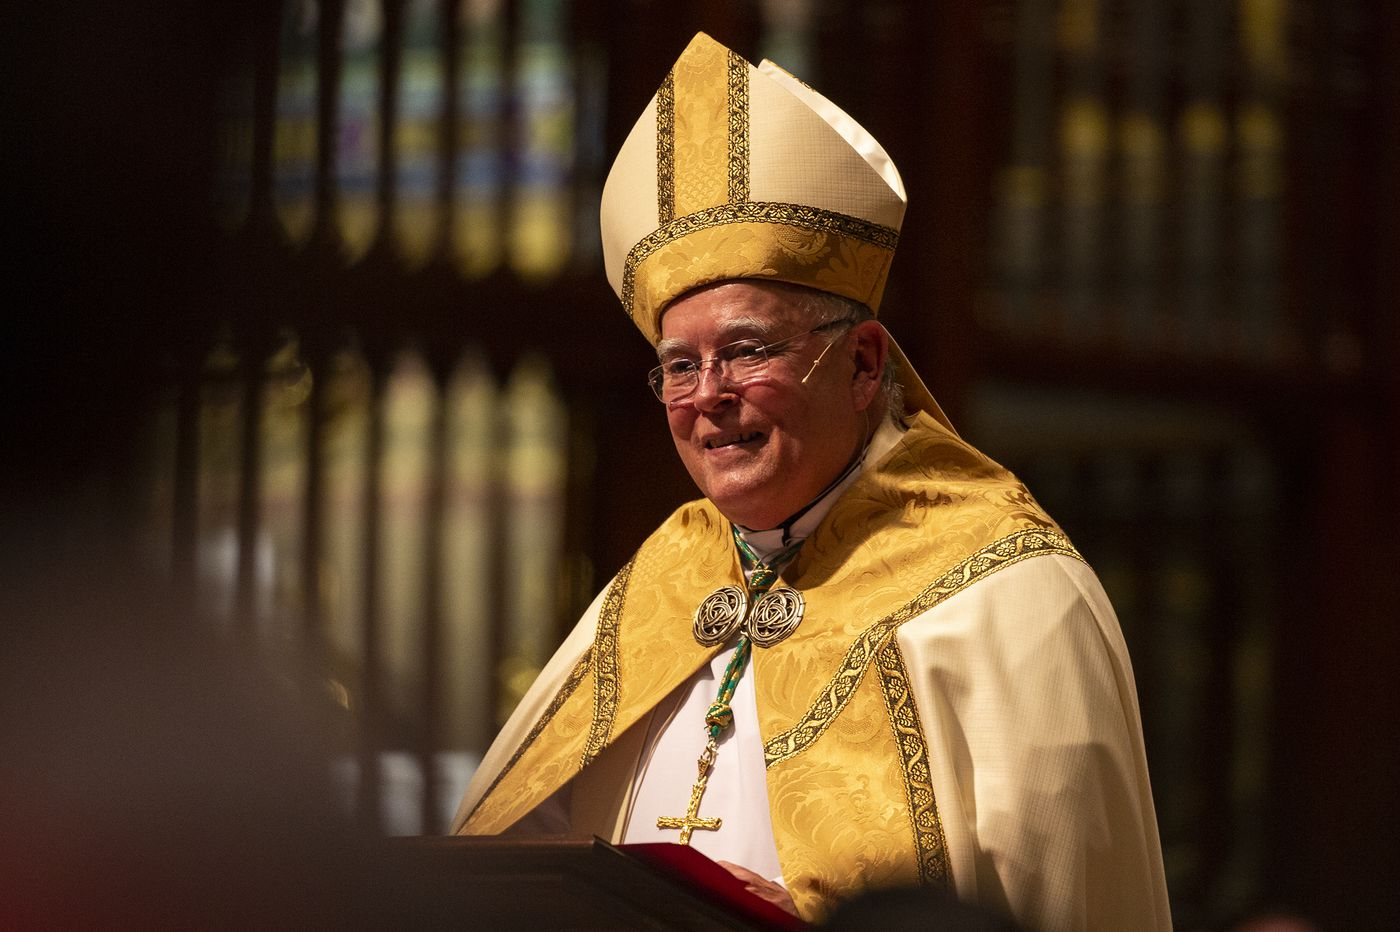 As Chaput turns 75, the countdown to Philadelphia's next Catholic archbishop begins